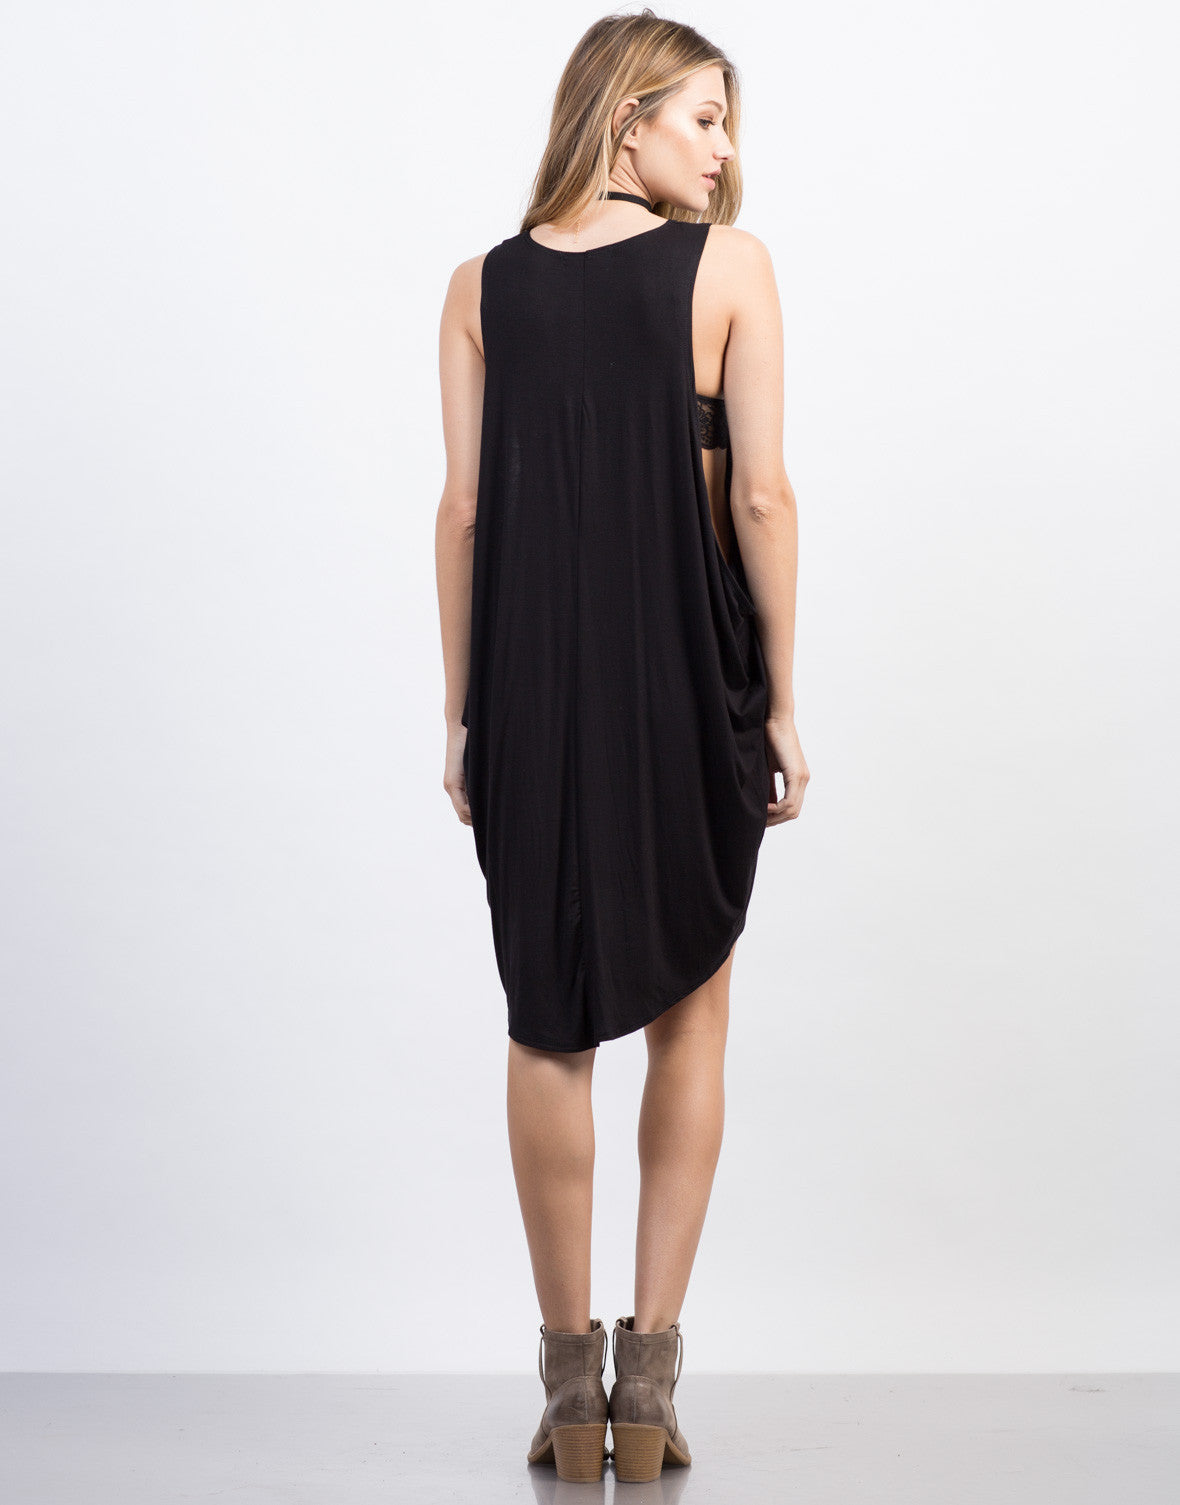 Back View of Oversized Tunic Tank Dress